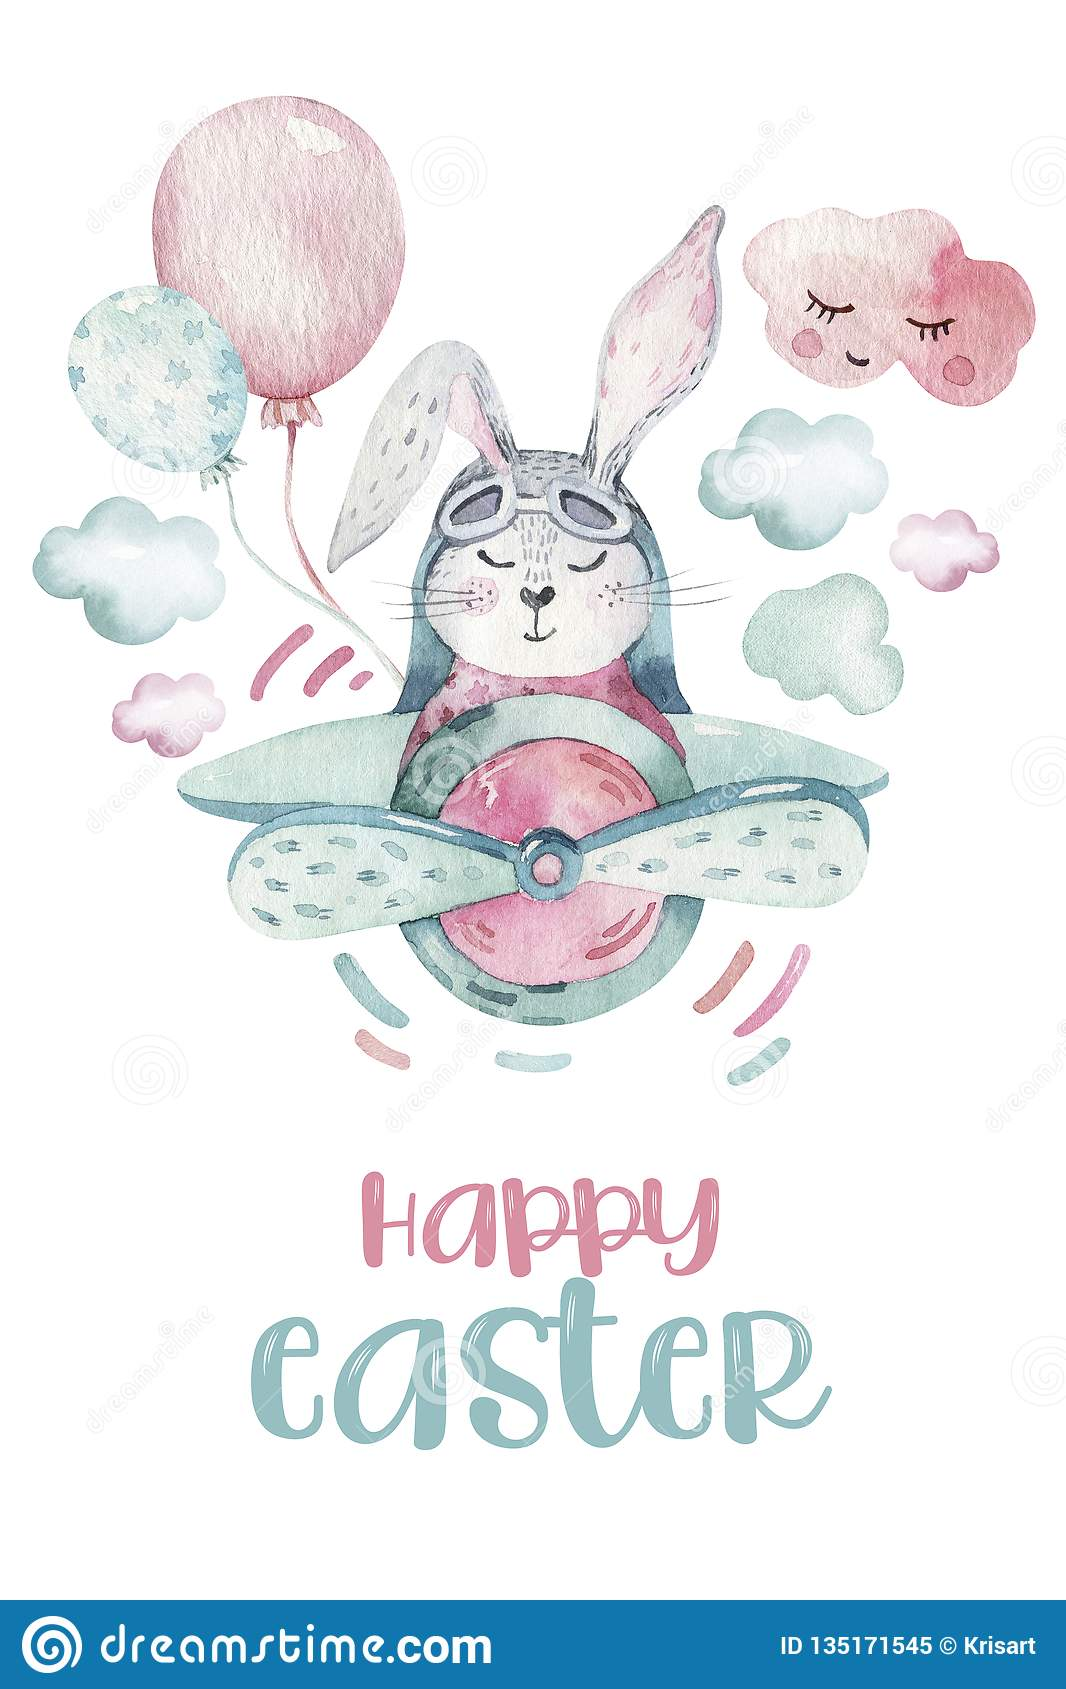 Hand Drawing Fly Cute Easter Pilot Bunny Watercolor Cartoon Bunnies With Airplane In The Sky Turquoise Watercolour Stock Illustration Illustration Of Cute Little 135171545